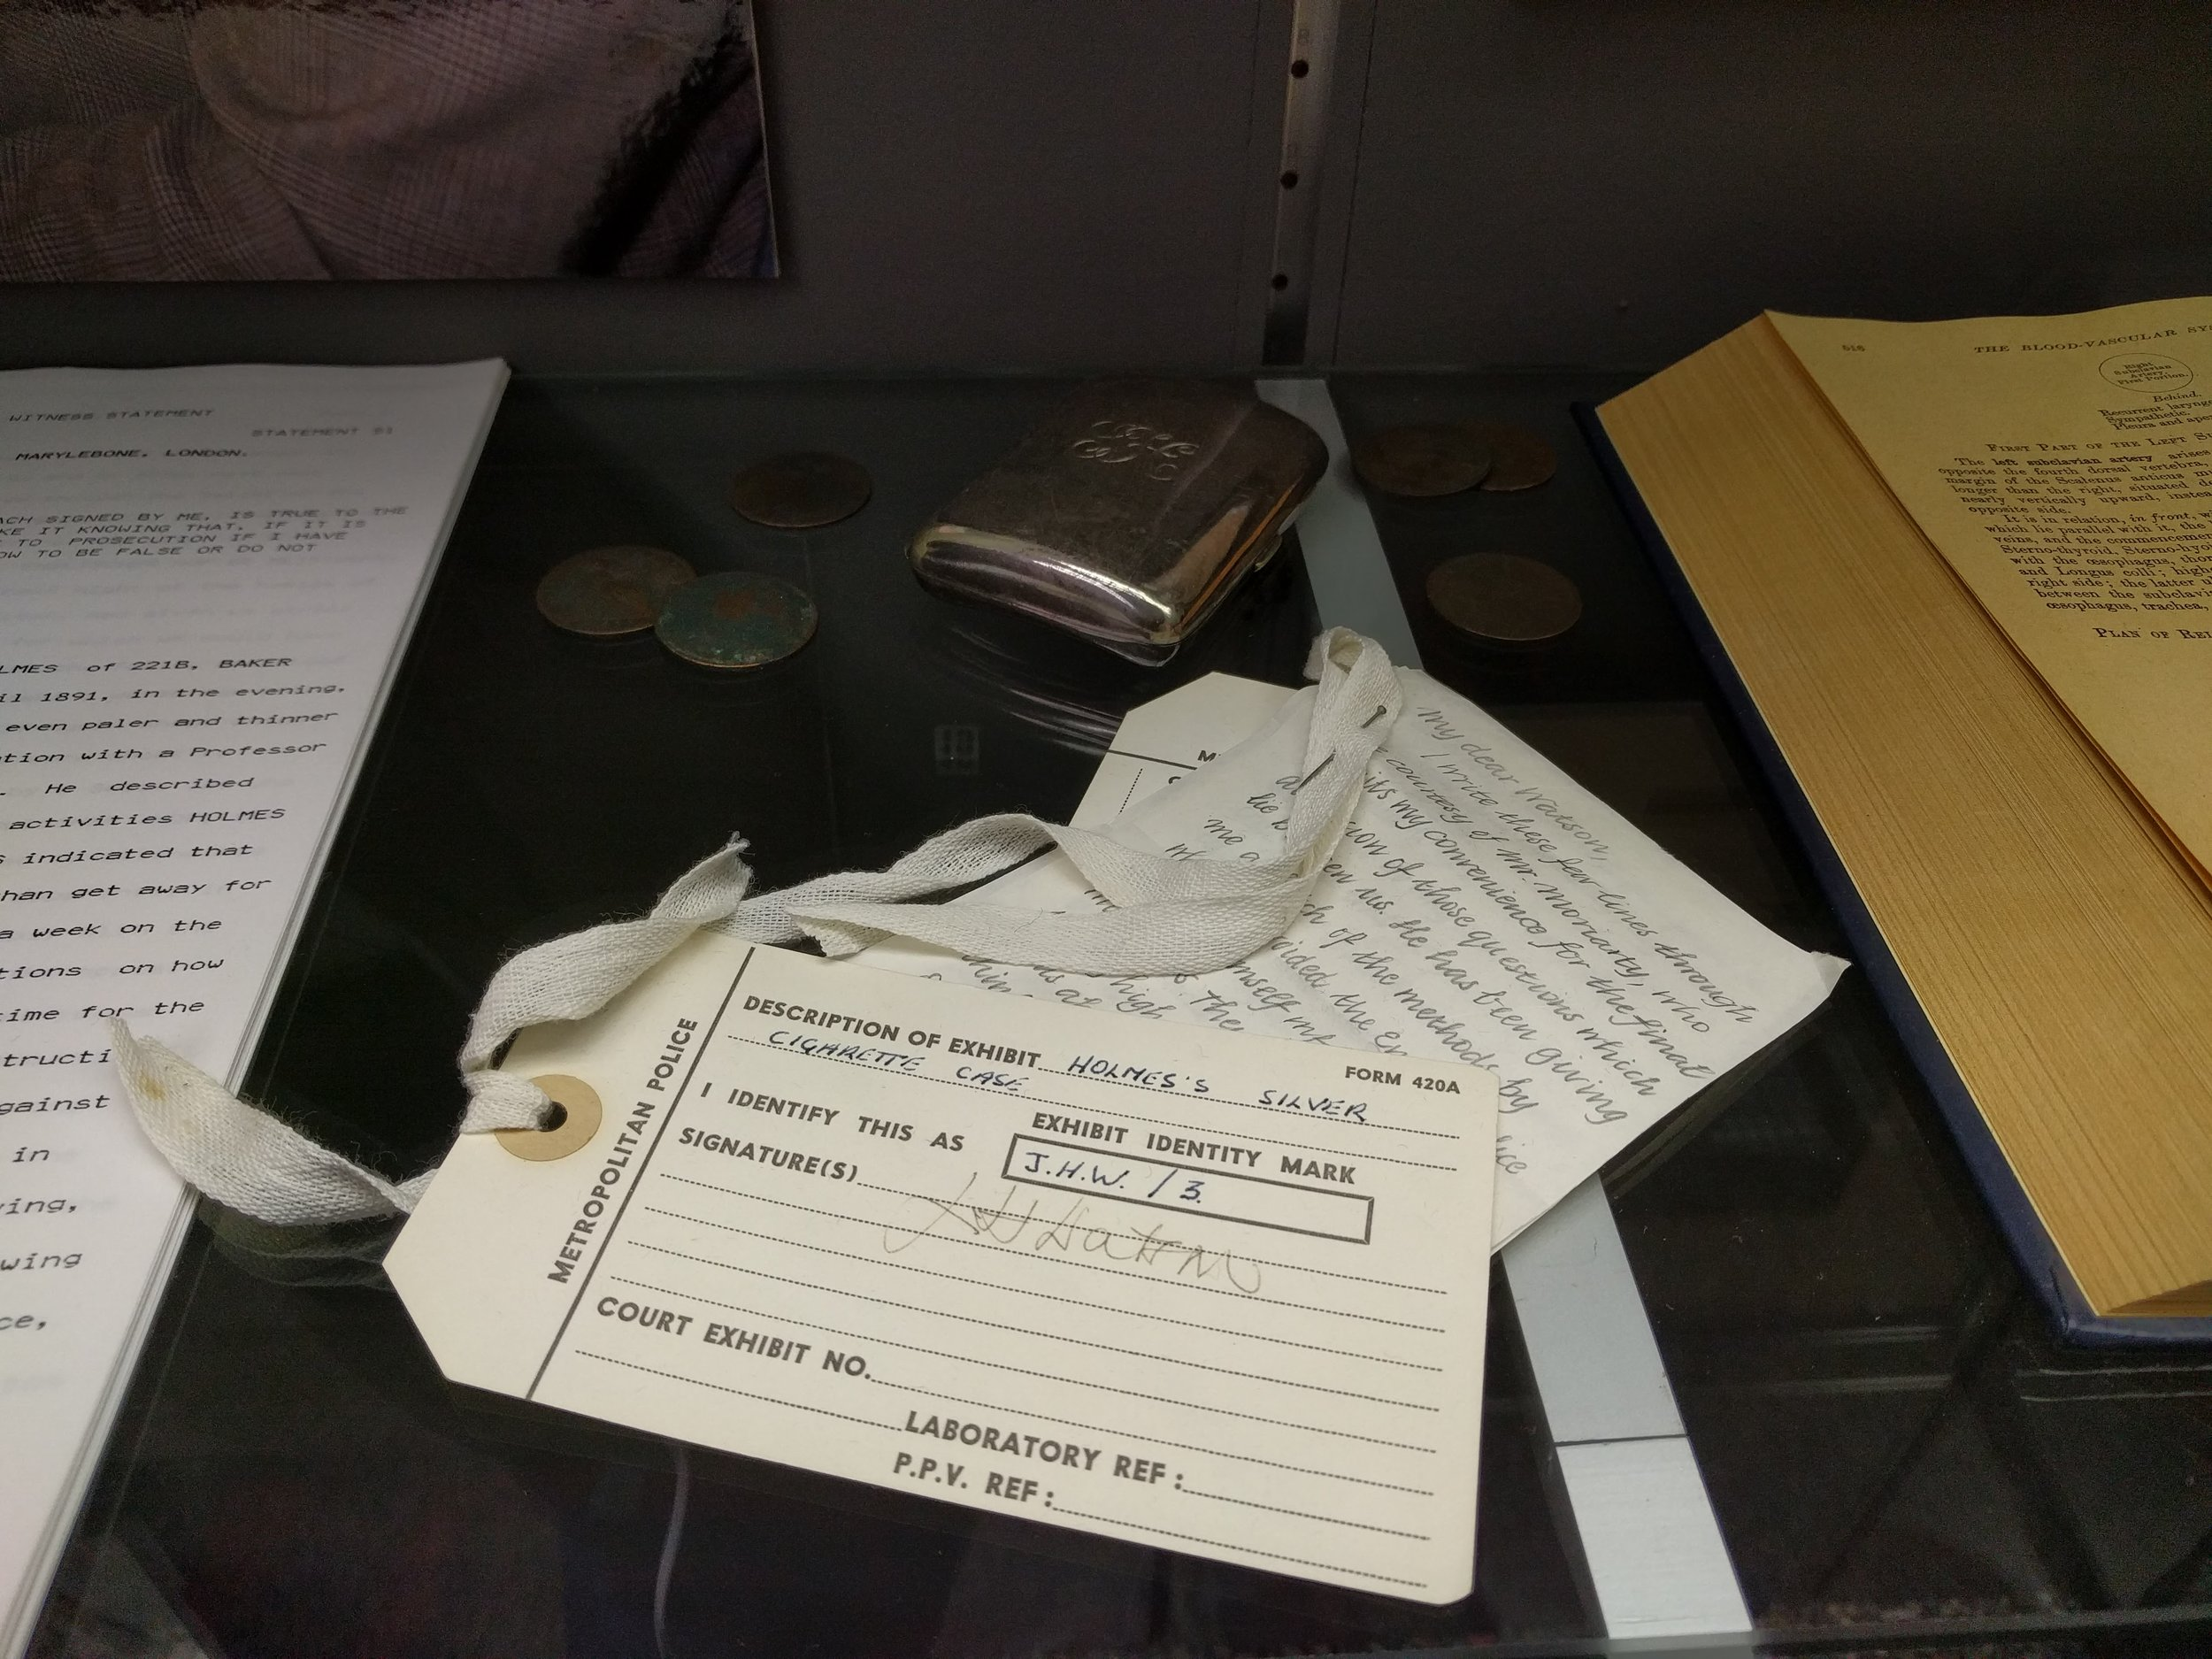 """The rest of the museum is one room of """"artifacts,"""" a collection of real (a Scotland Yard uniform) and imaginary (Sherlock's silver cigarette case and """"in case I die"""" note that he left for Watson on the ledge of the falls, before he tussled with Moriarty. Those items are tagged as if they were part of a Scotland Yard investigation of that time period—and to the left is an imagined statement that would've been given to the police by Watson. So cheesy, so creative, and I loved it all."""